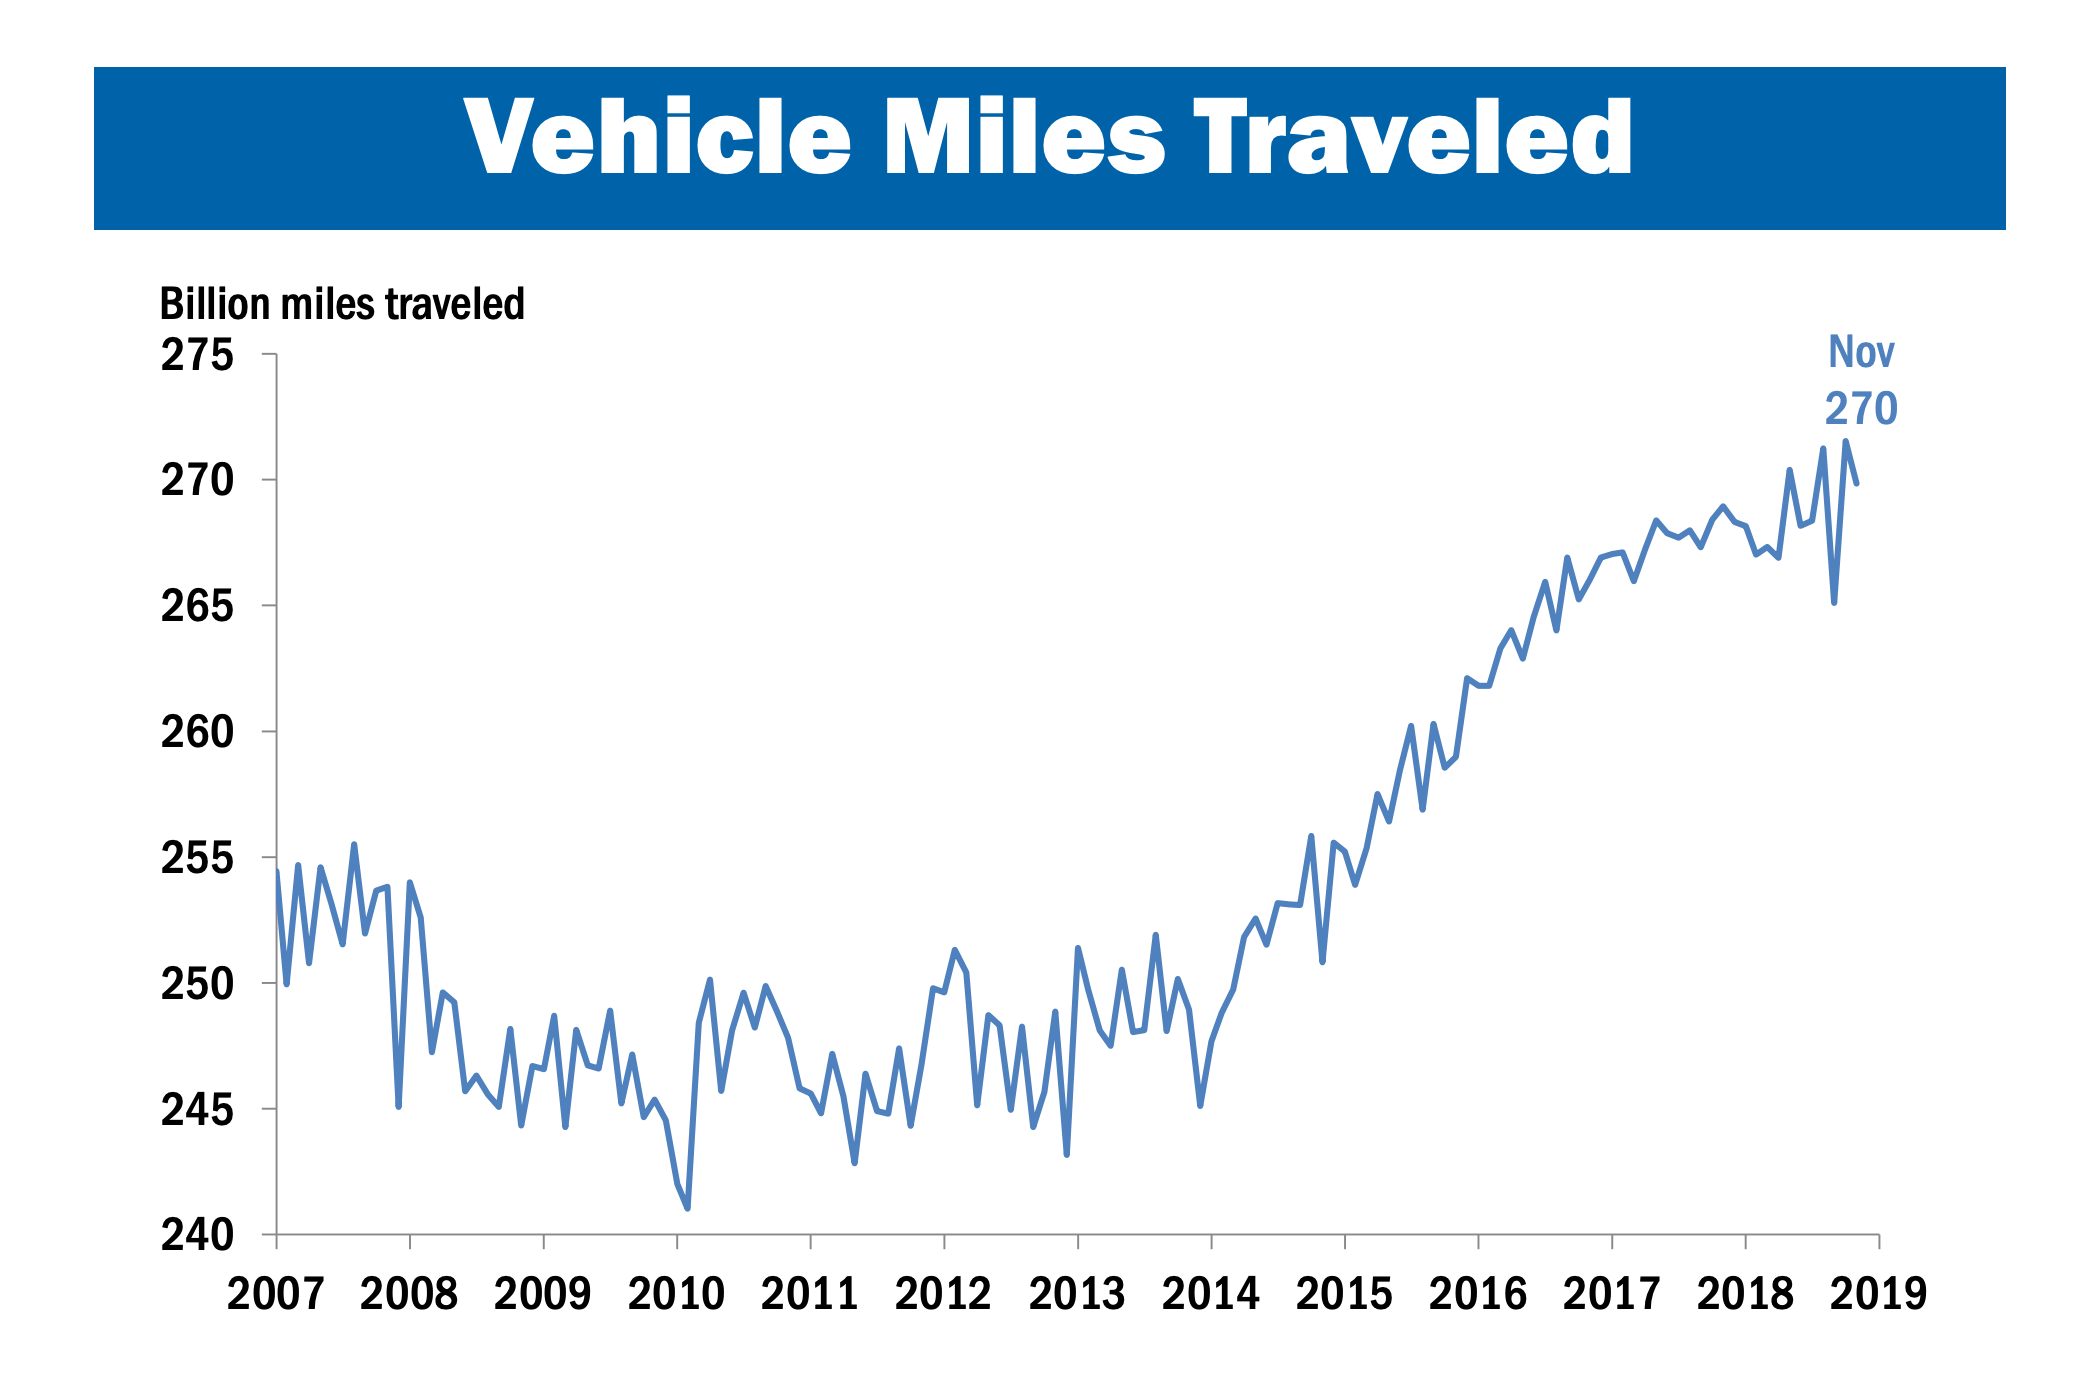 Chart showing the rise in vehicle miles traveled in the United States